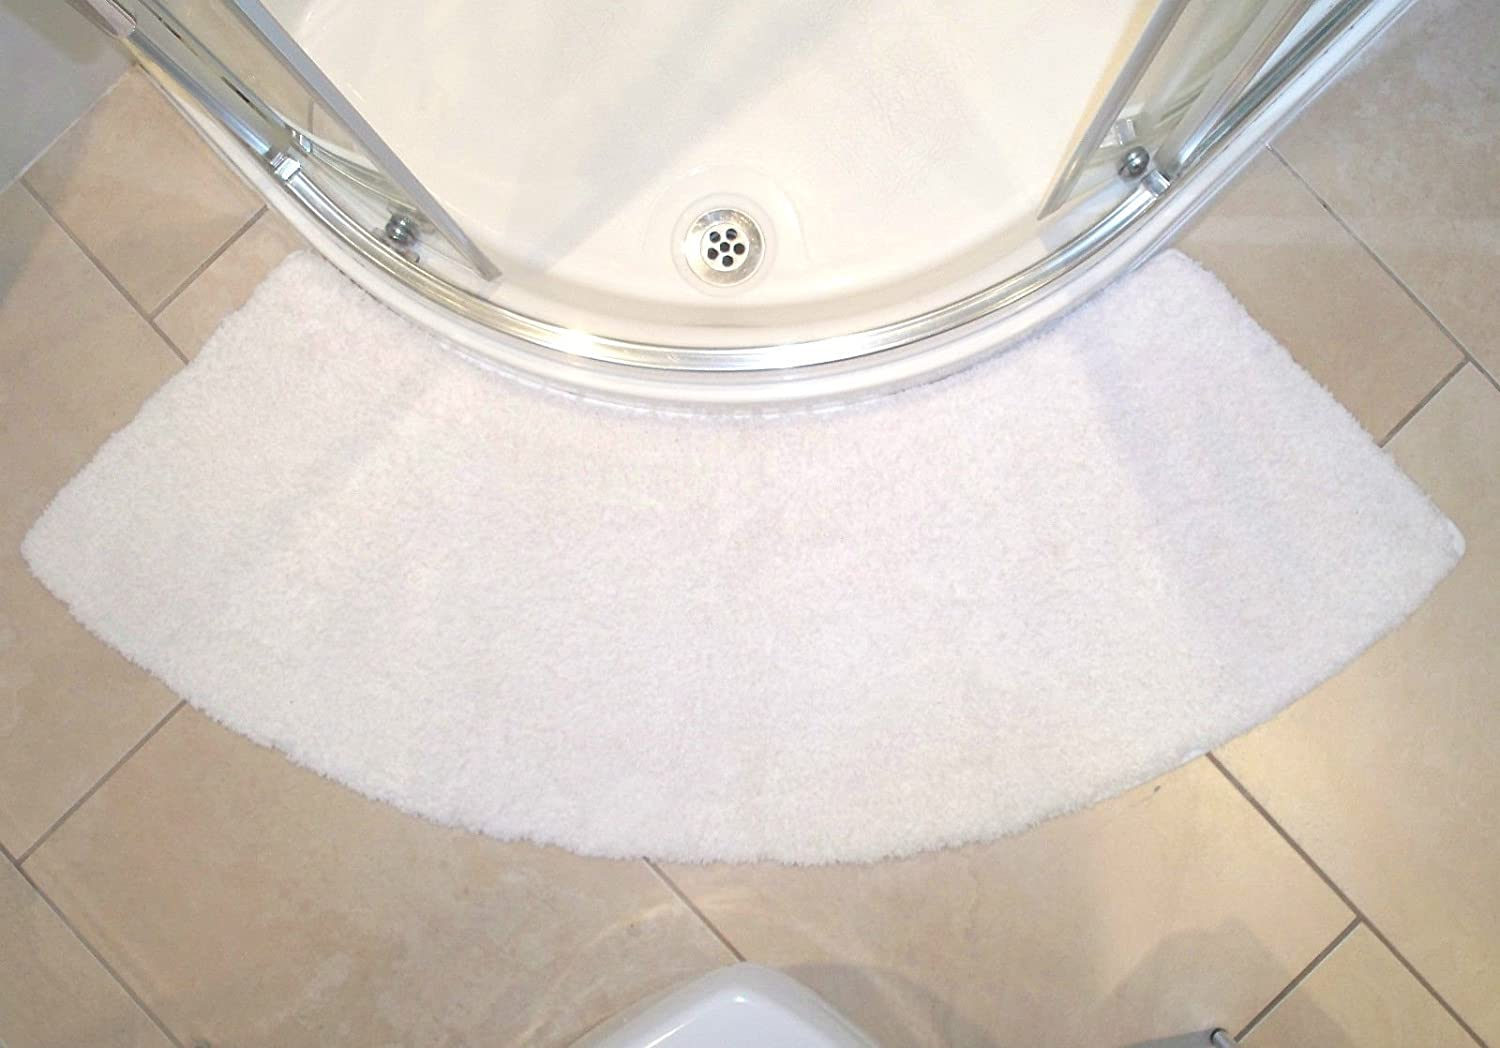 quadrant white curved shower mat largest available amazoncouk kitchen u0026 home